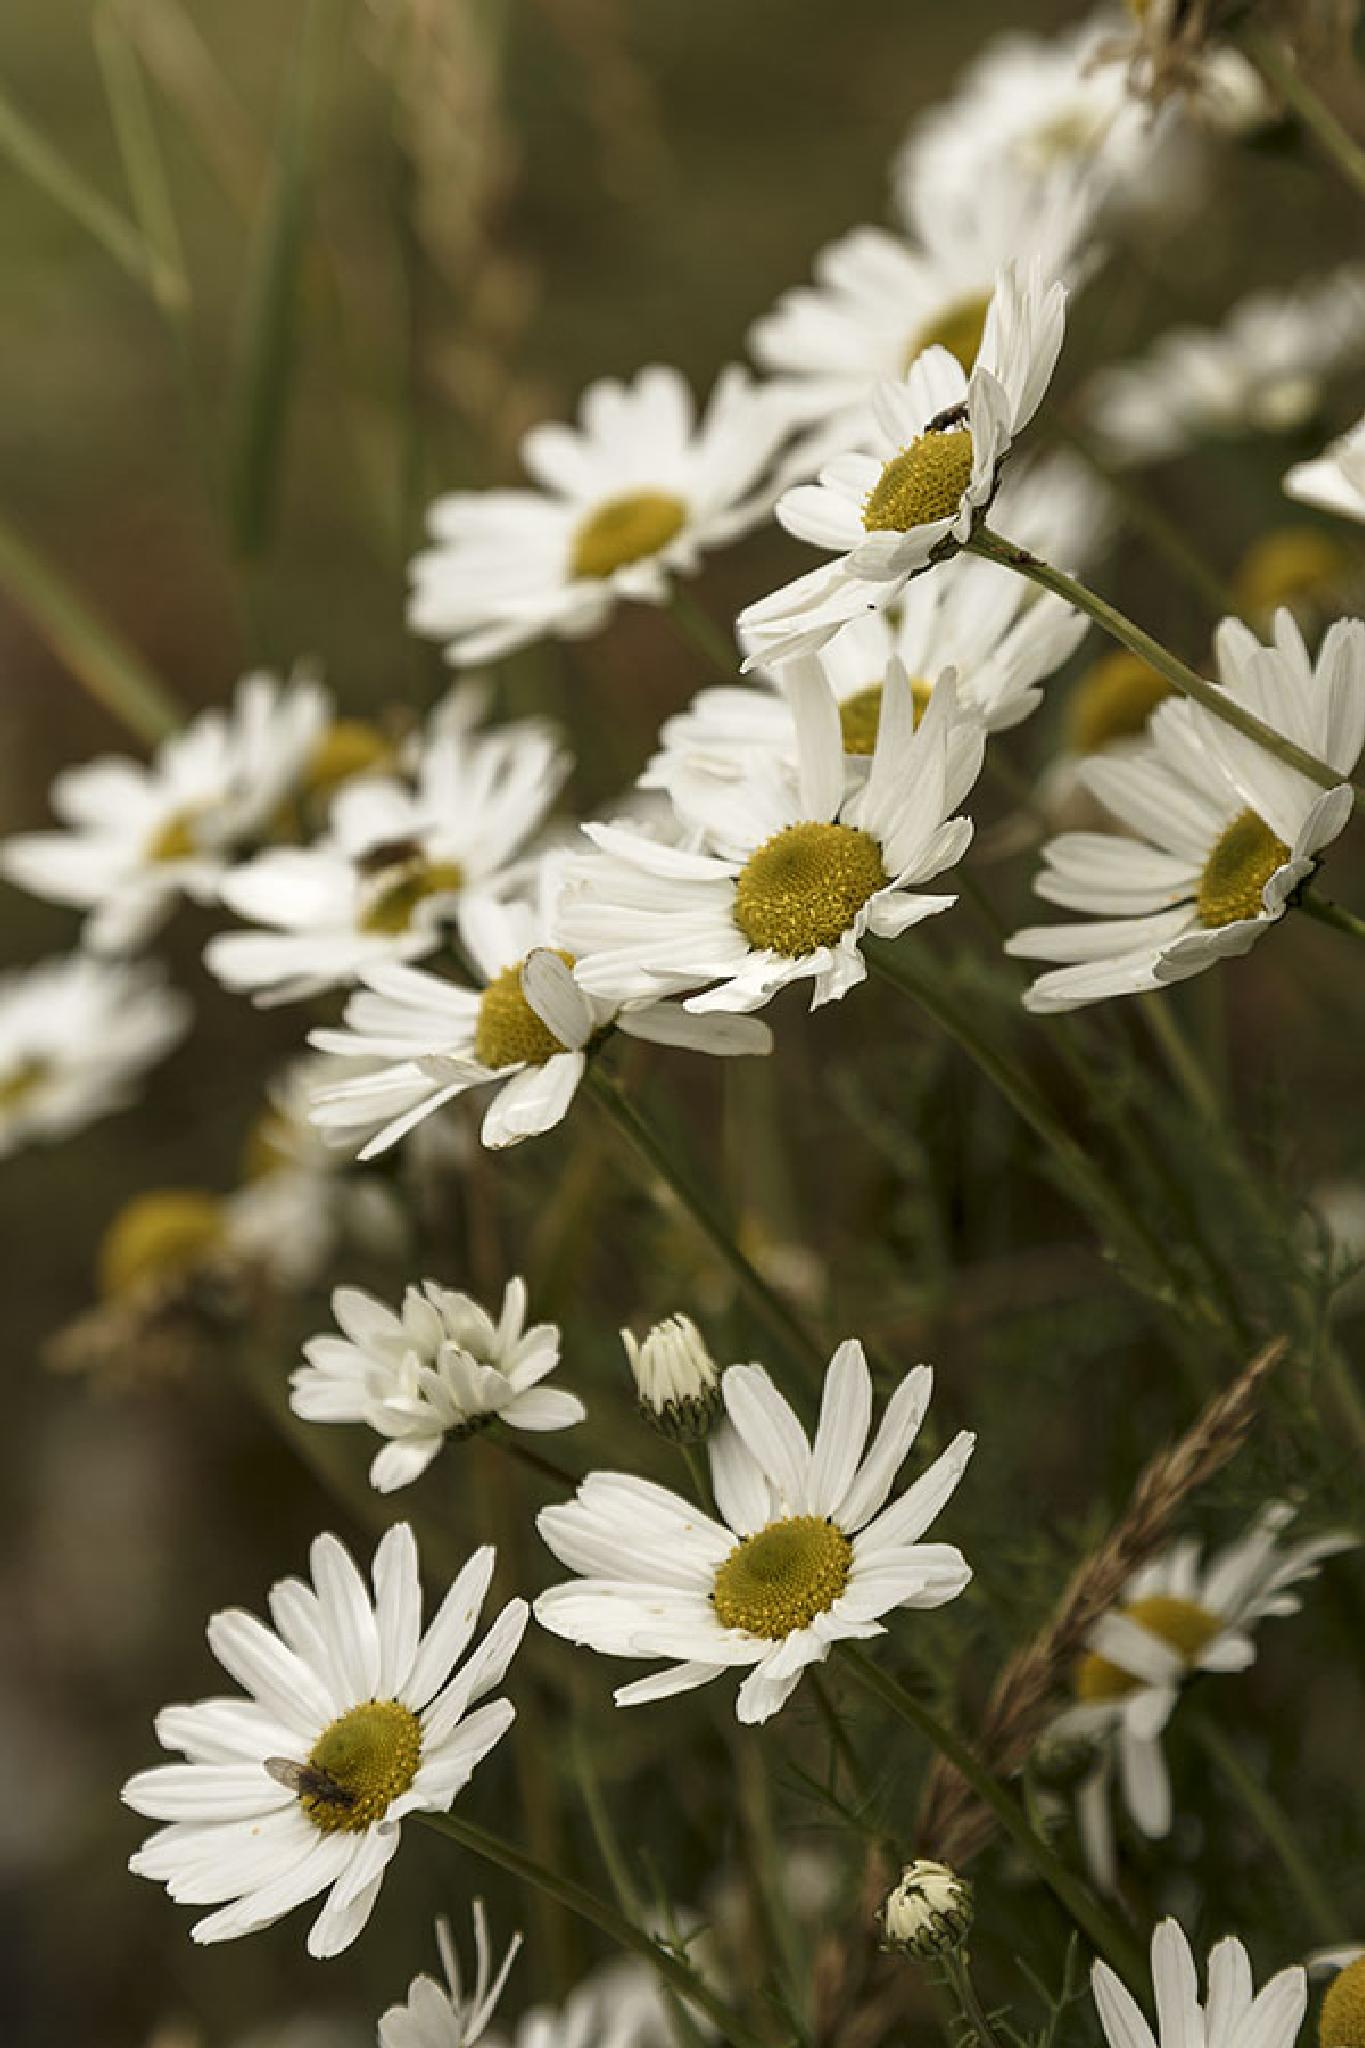 Scentless Mayweed by Jim Hamilton